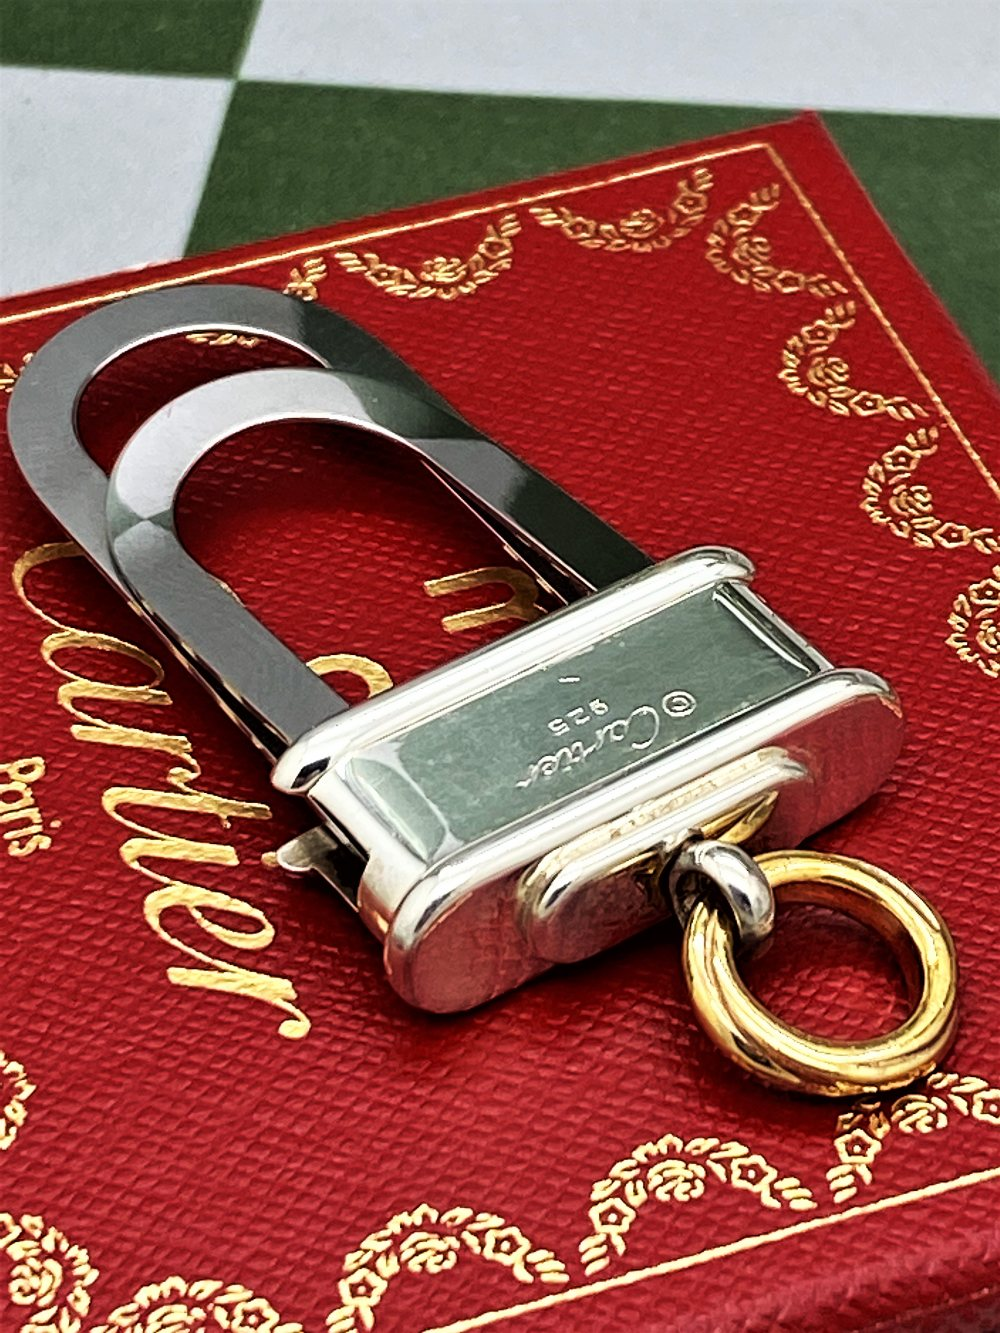 Cartier Paris -Extremely Rare Sterling Silver 925 & Gold Key Ring / Money Clip - Image 9 of 9